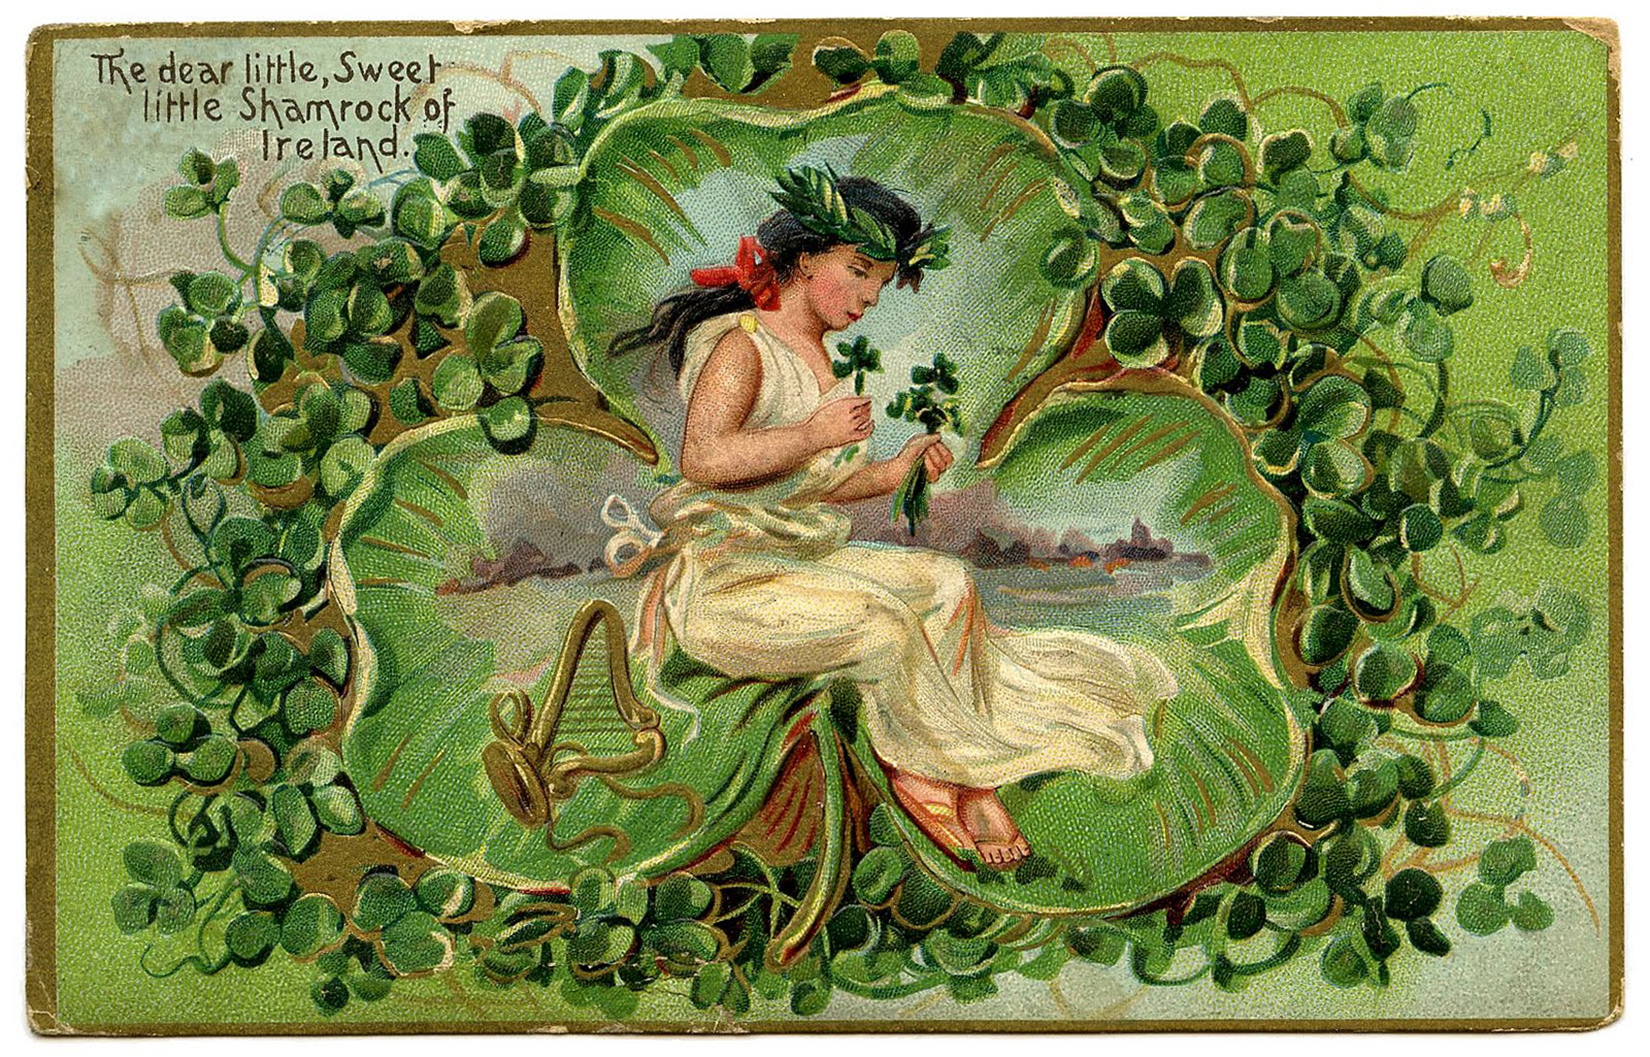 Sweet Shamrocks of Ireland Vintage Postcard Image